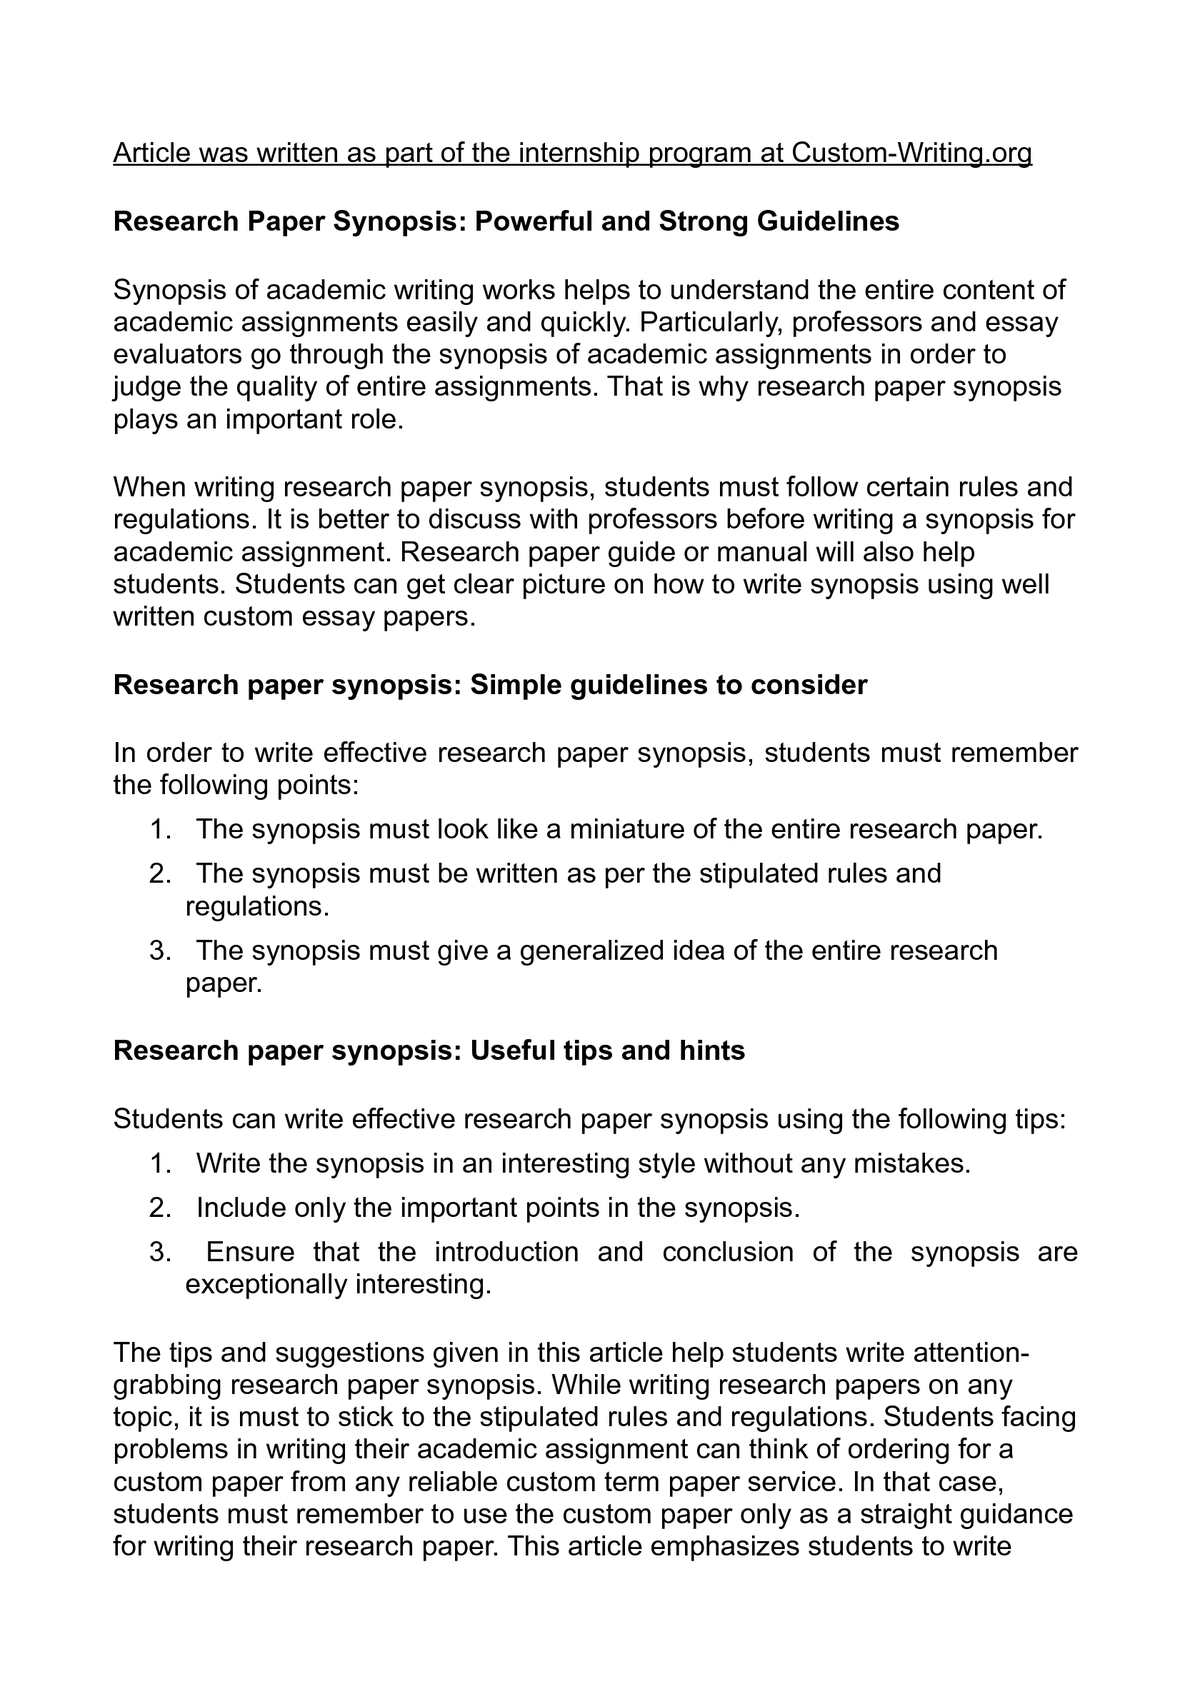 011 P1 Research Paper Order Of Wonderful A Making Mla Reviews Full